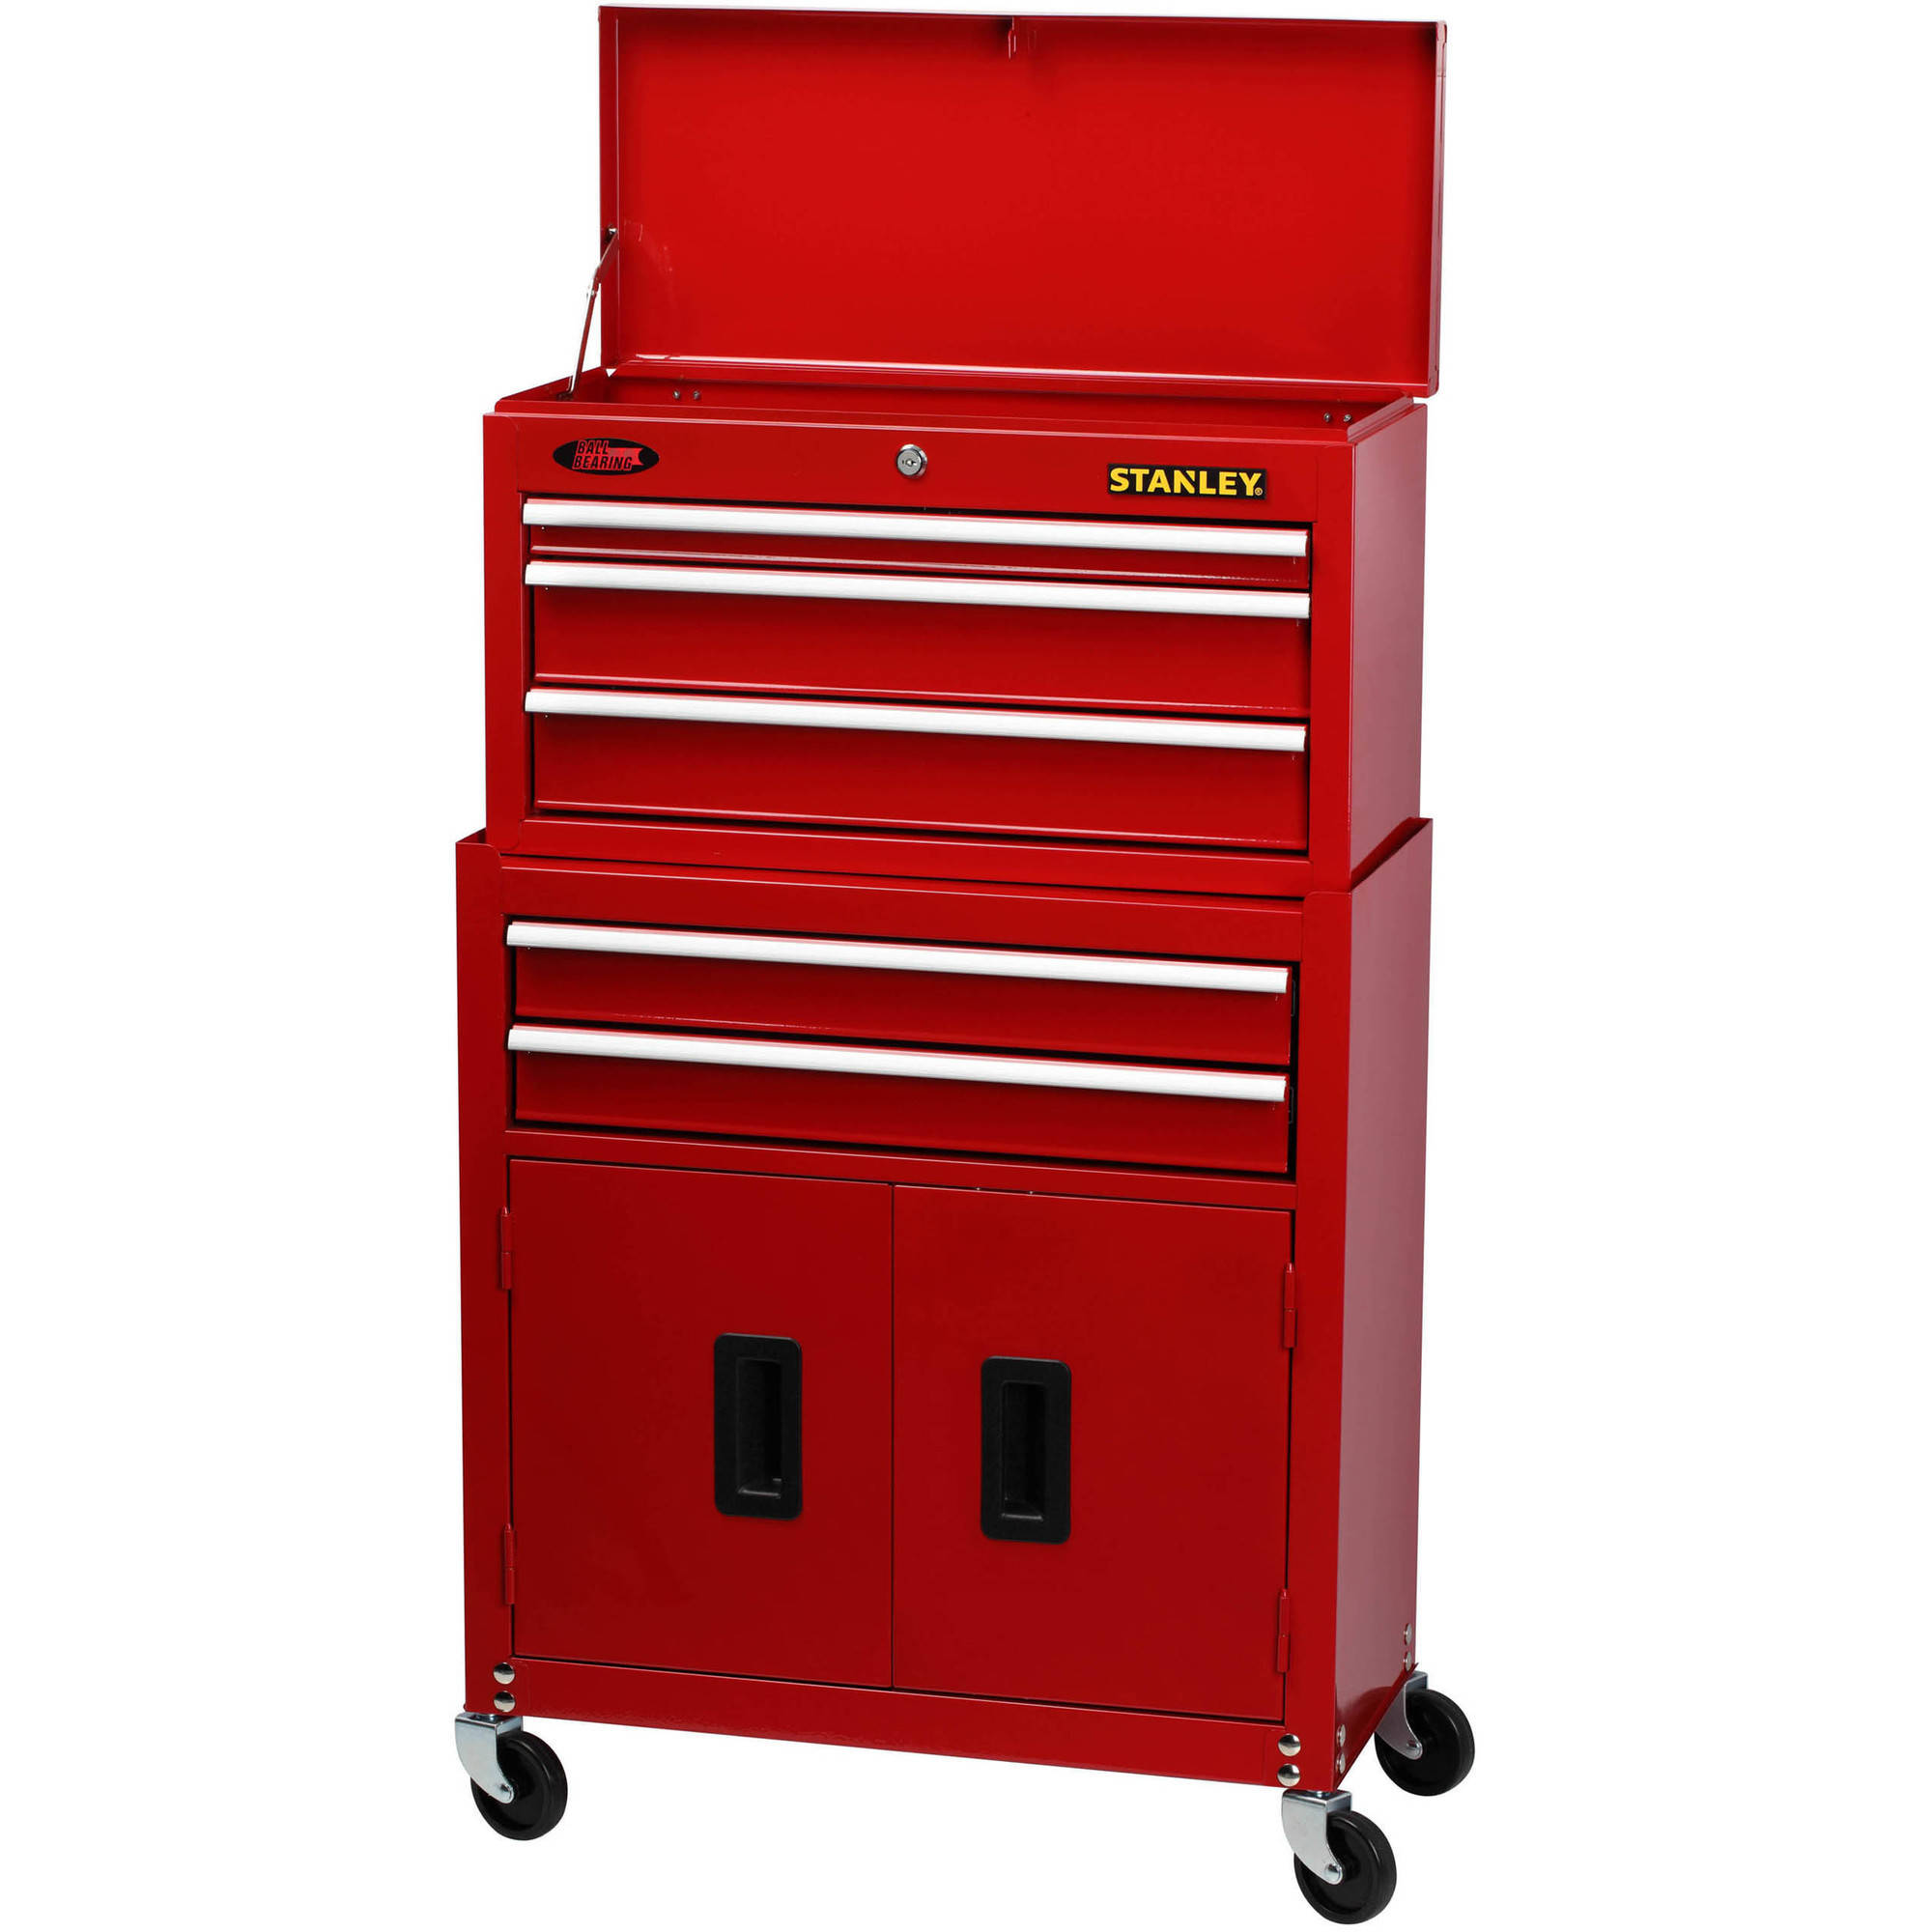 Stanley 5 Drawer Chest And Cabinet Combo With Bi Fold Doors Red Walmart Com